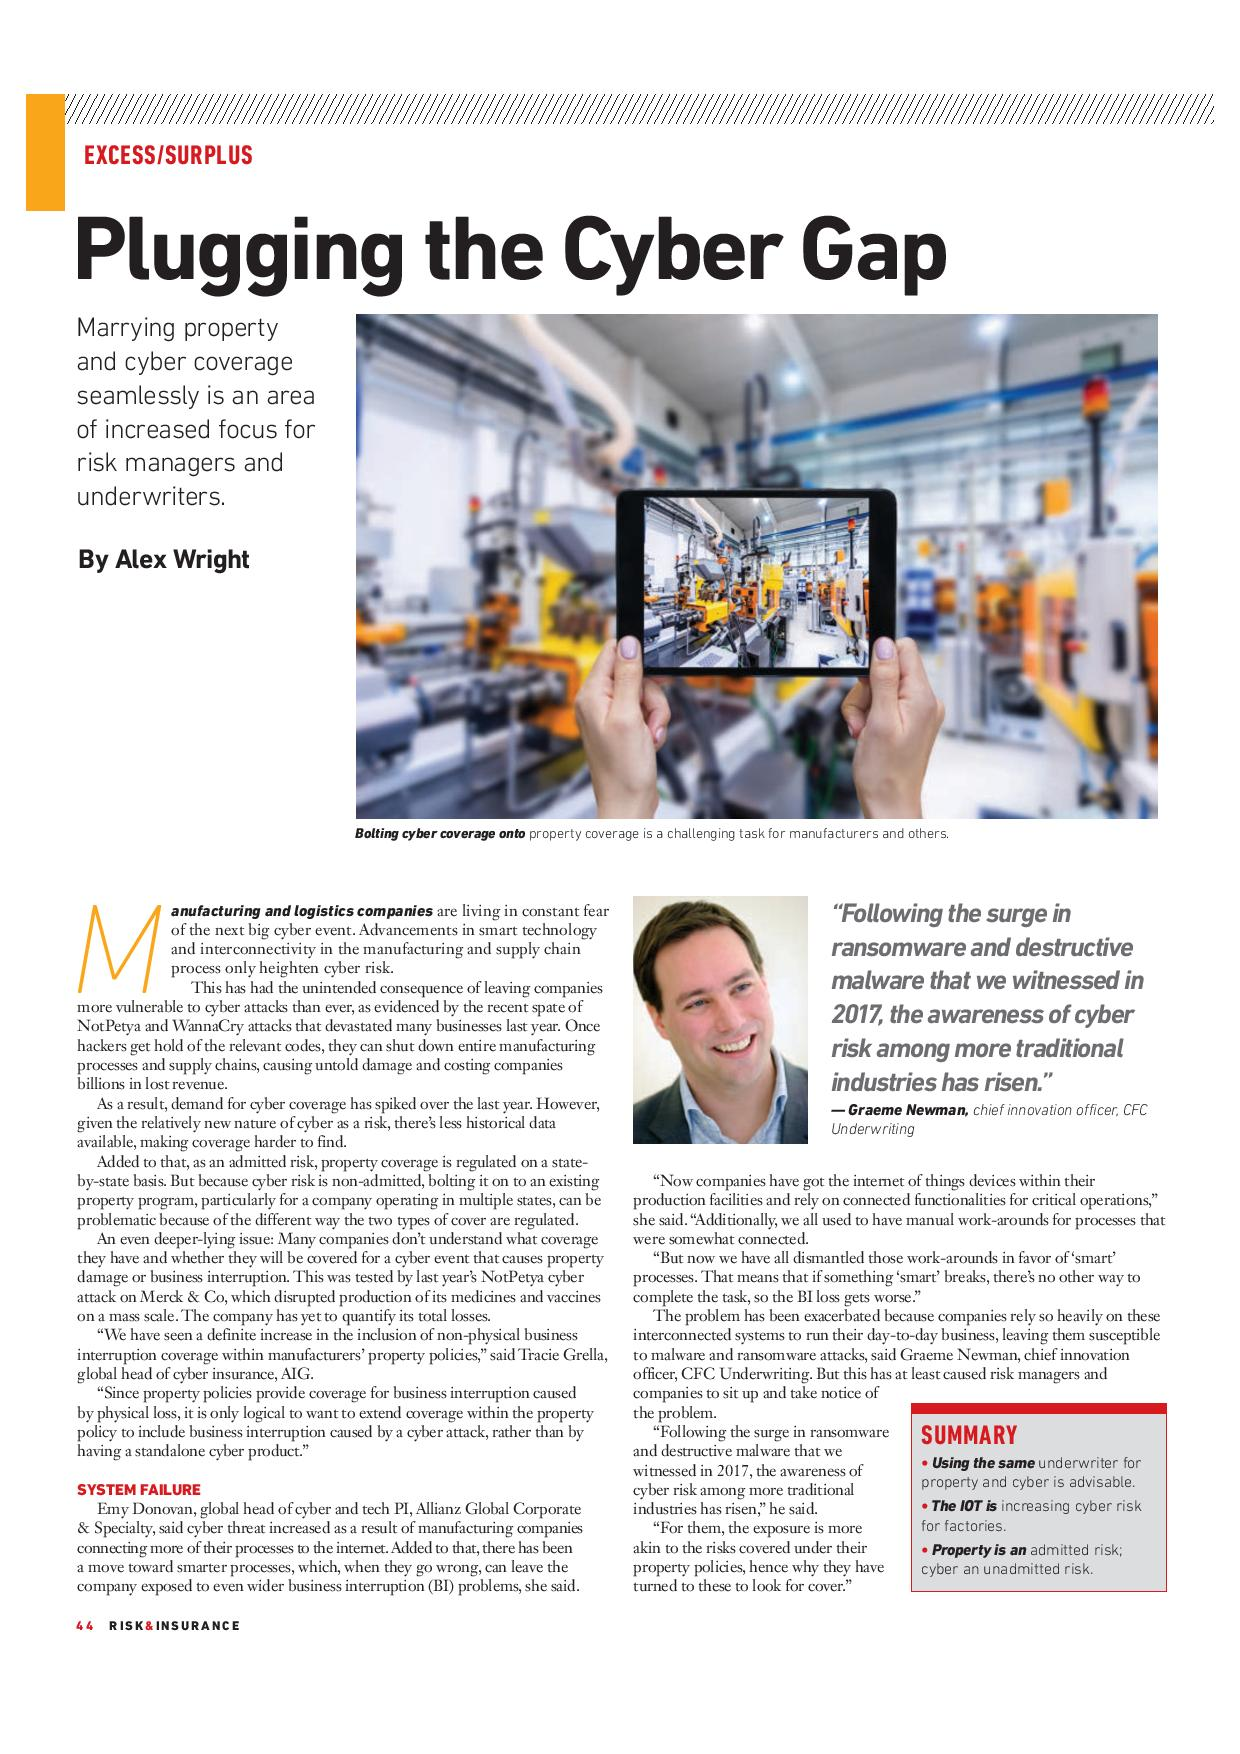 plugging-the-cyber-gap-page-001-2